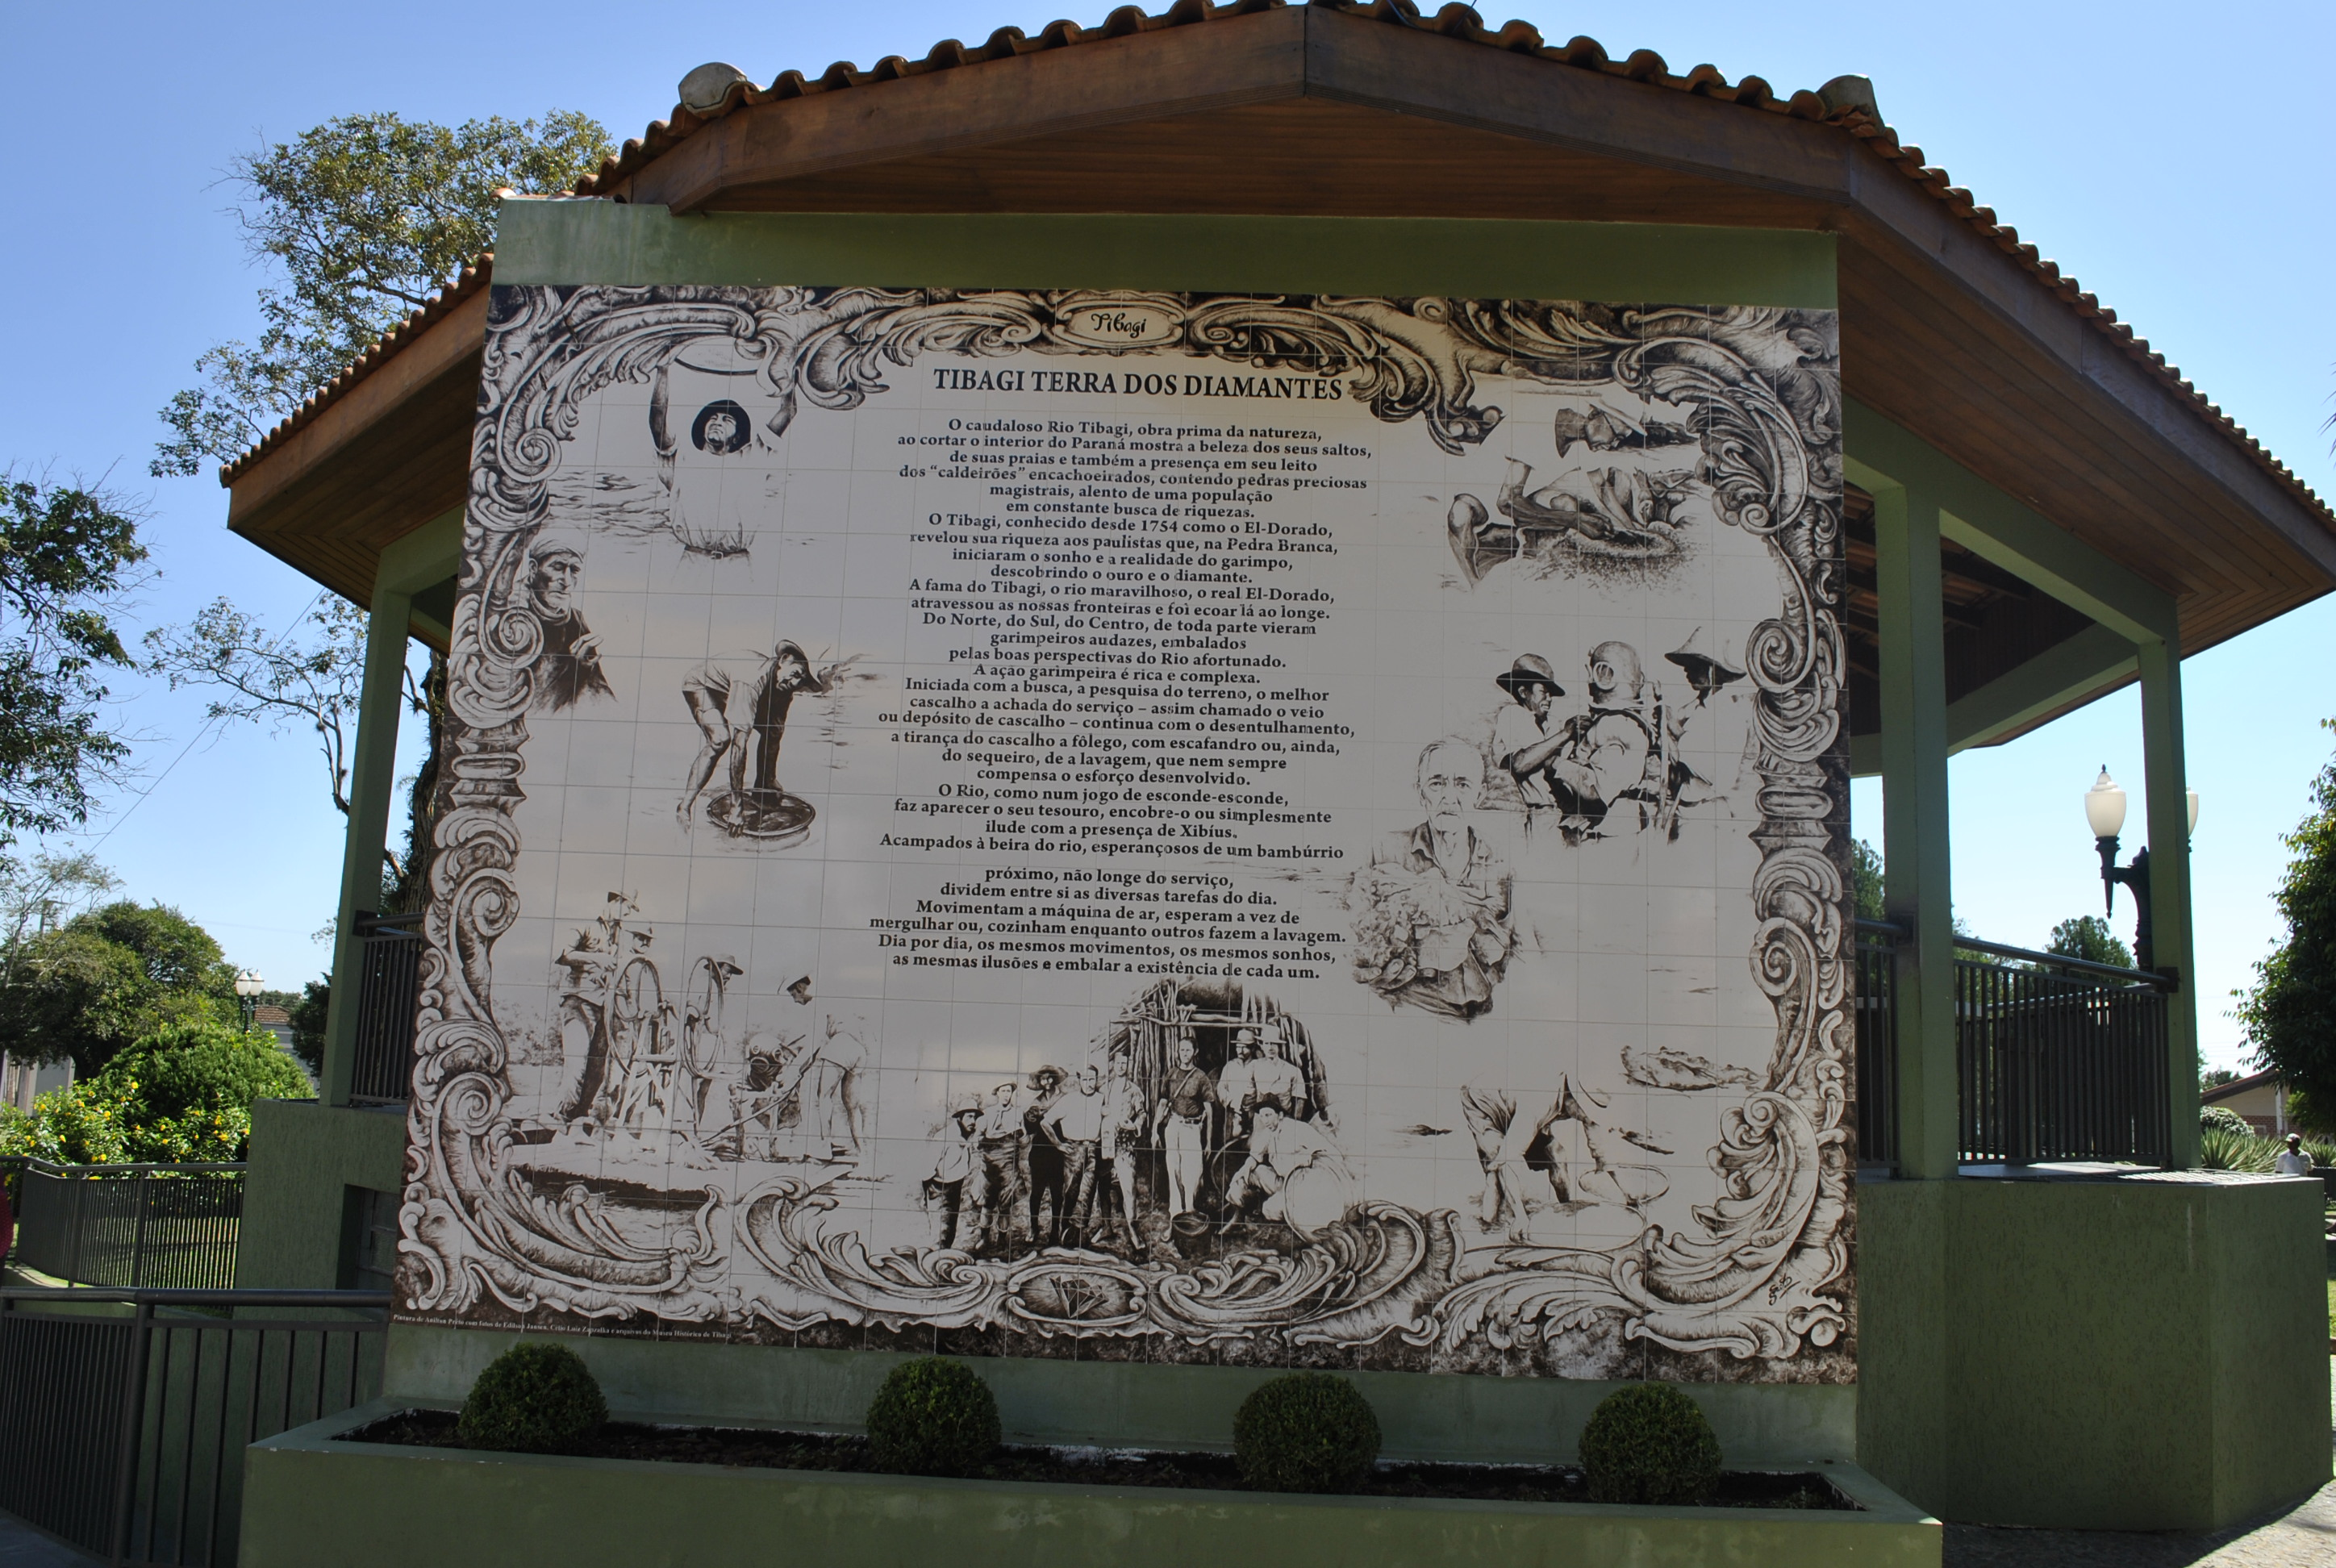 This panel at the central square holds the town history, that is rich and diverse, principally concerning the mining (gold and diamonds) activities.